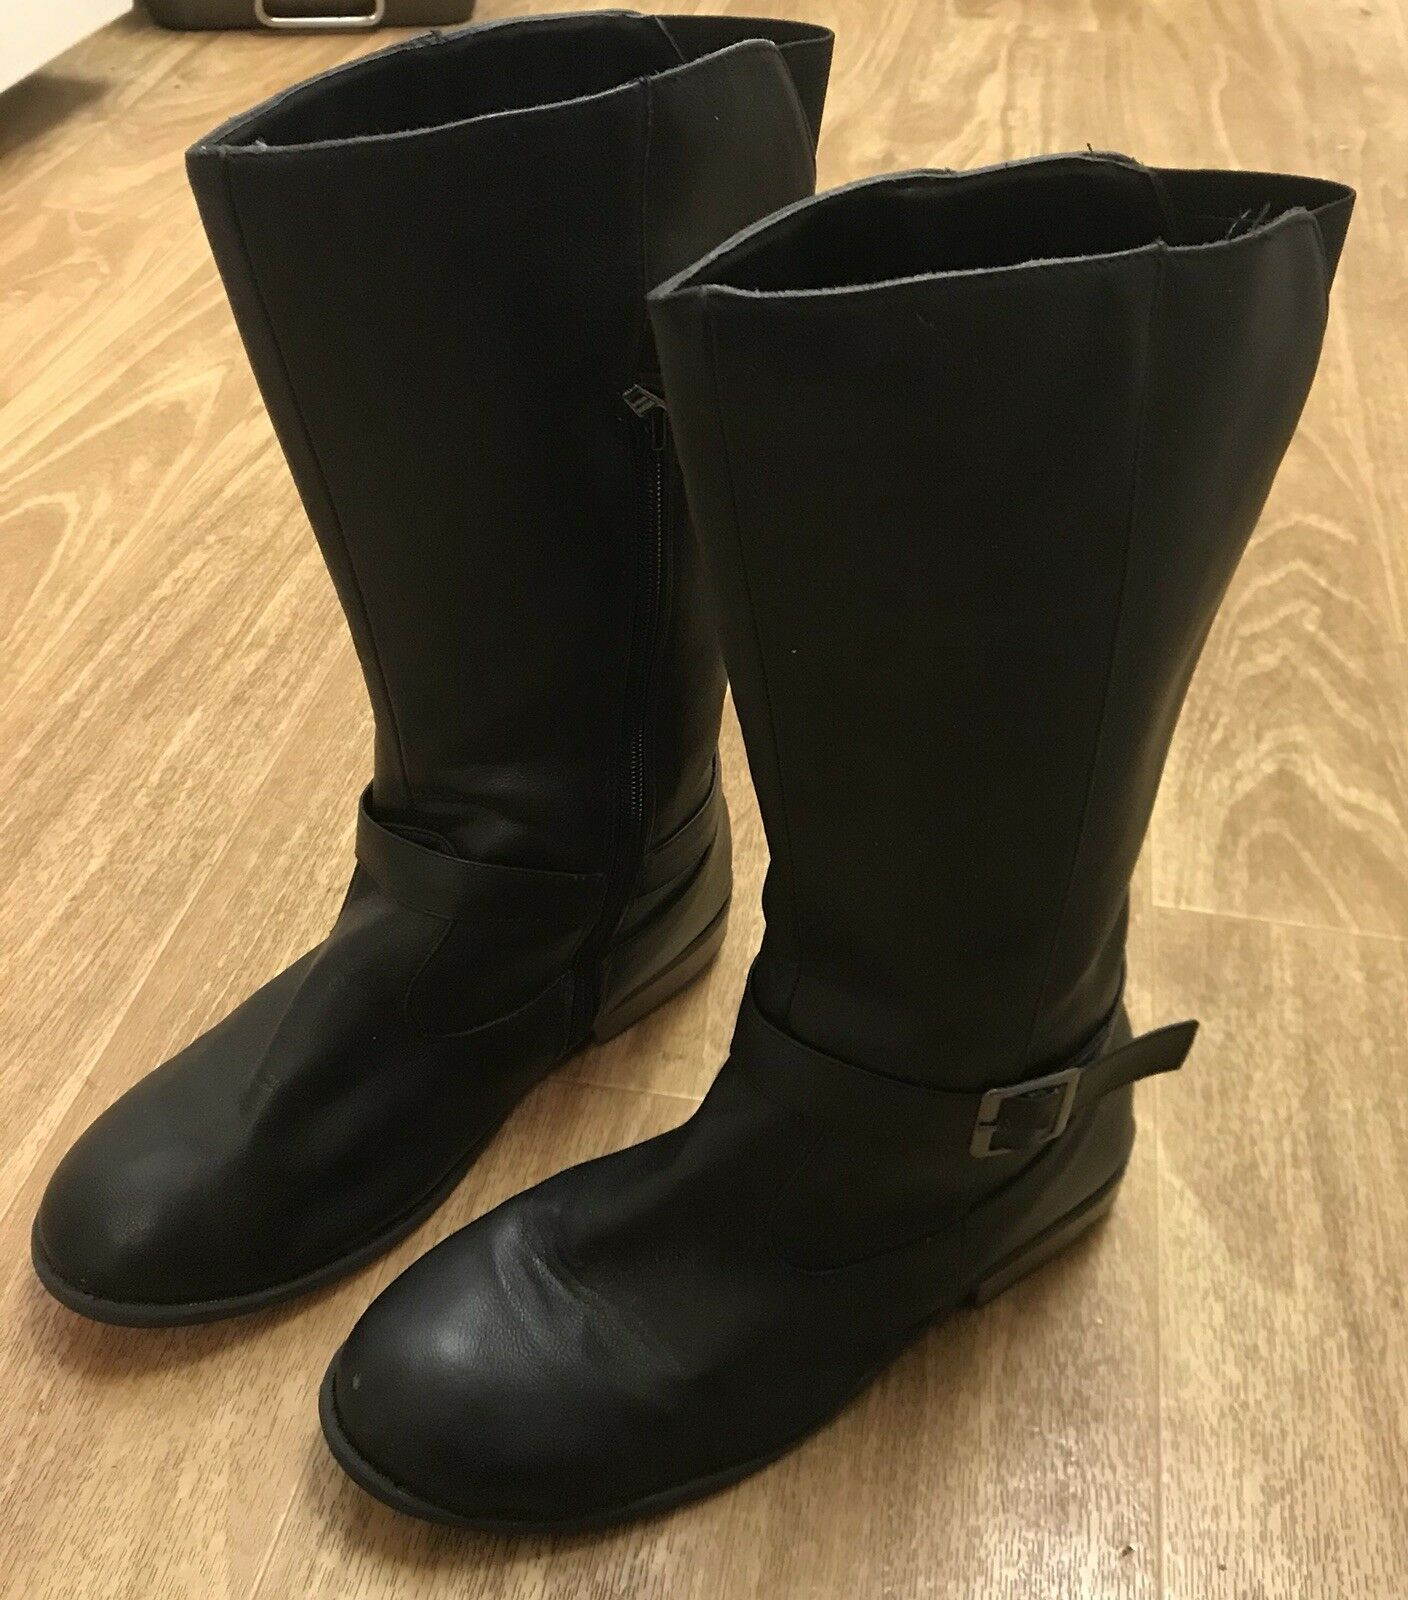 Women's Old Navy Black Mid-Calf / Knee High Boots Size 5